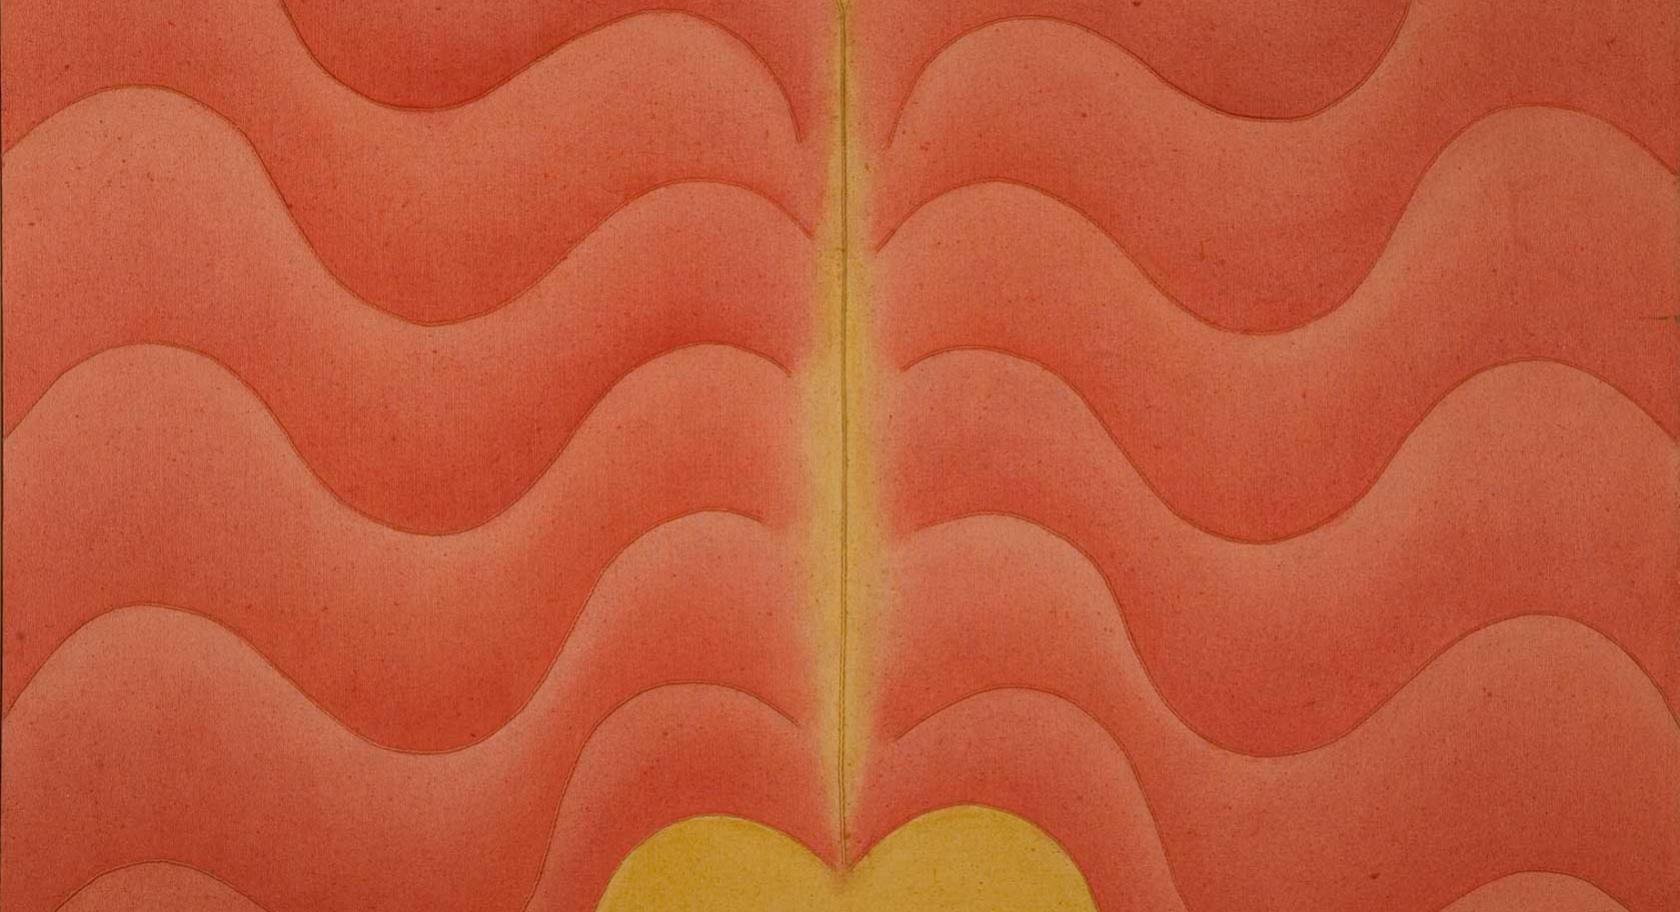 Signe Stuart (American, b. 1937), Untitled [Composition with Rib Shapes], 1970, acrylic on sewn canvas, 40 x 60 inches, Gift of James and Marilyn Warenski, UMFA1999.25.1